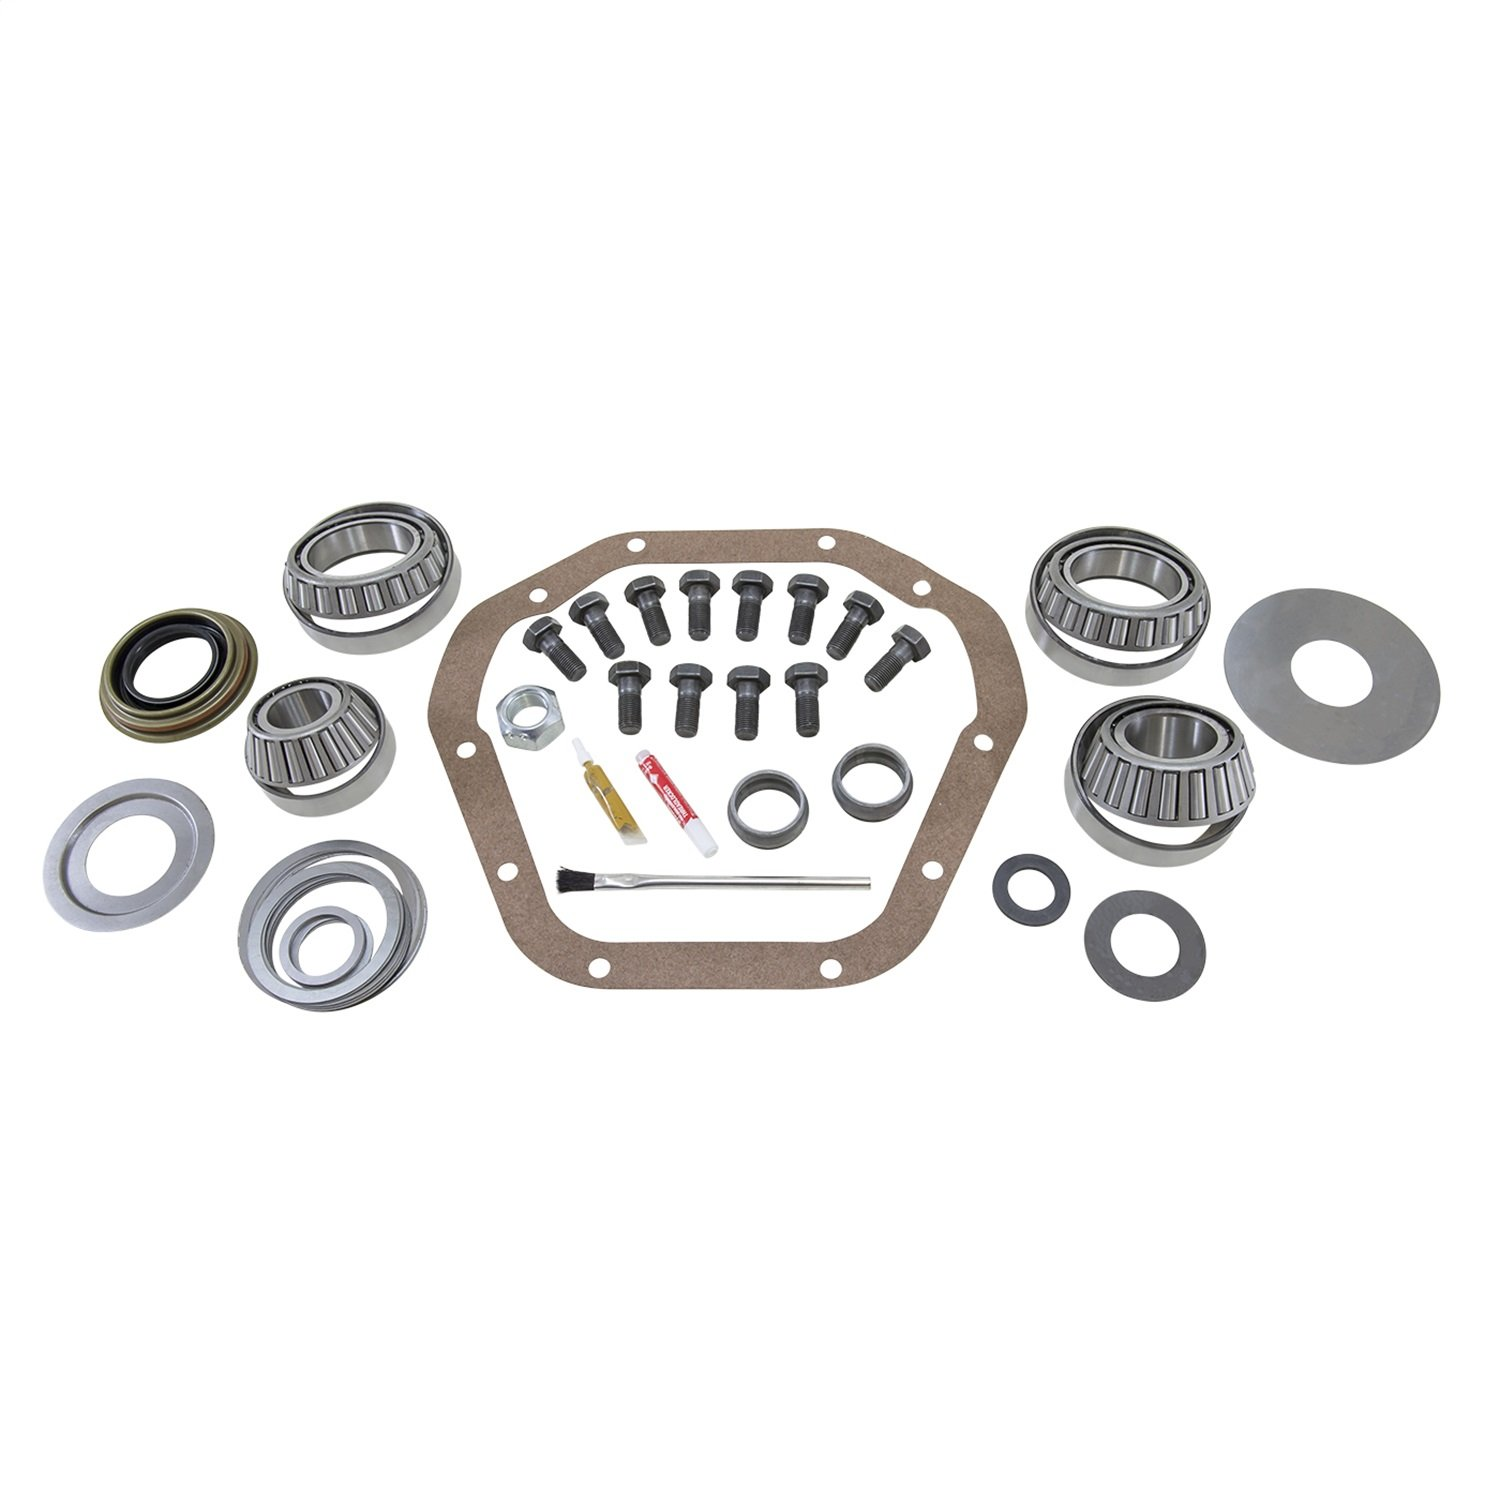 Yukon YKD60-F Front Master Overhaul Kit for Dana 60 Axle